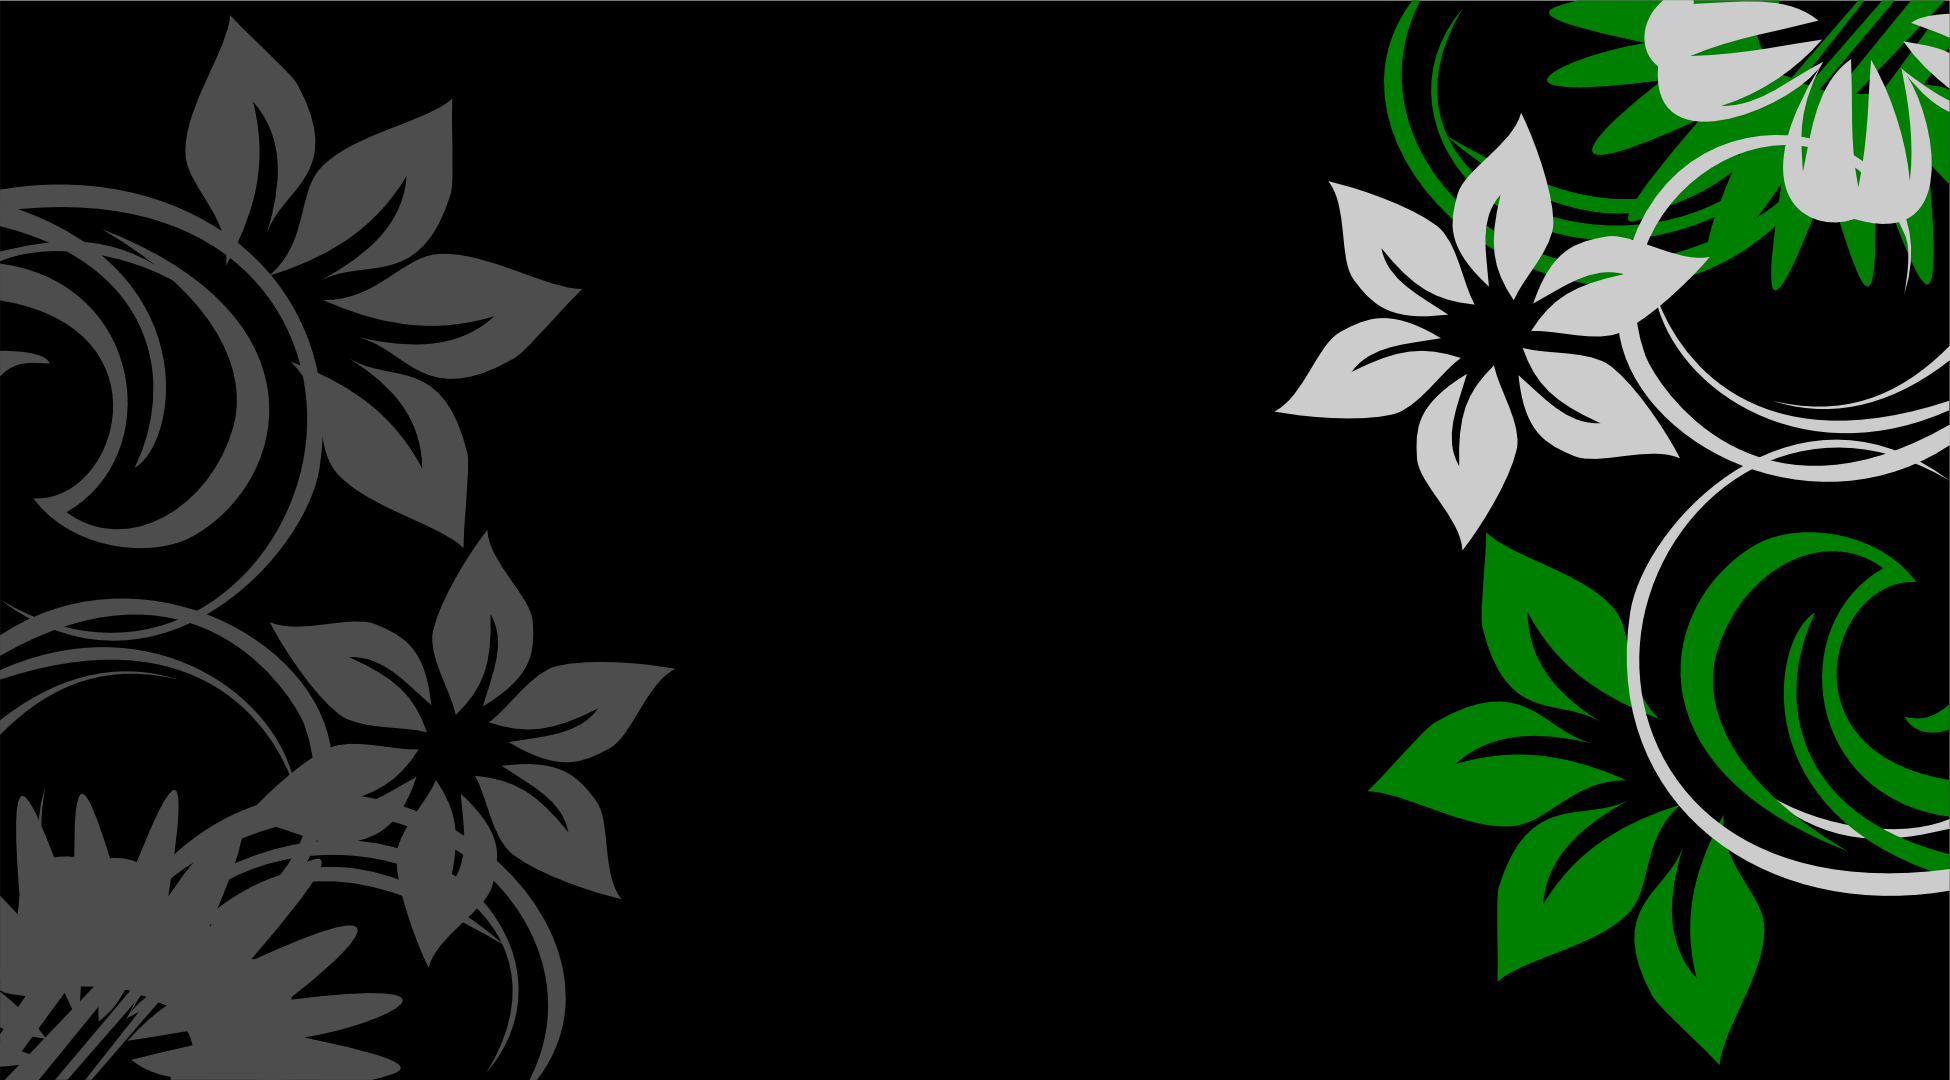 Floral Background Green Silver Grey Black By Shadowweaver97 On